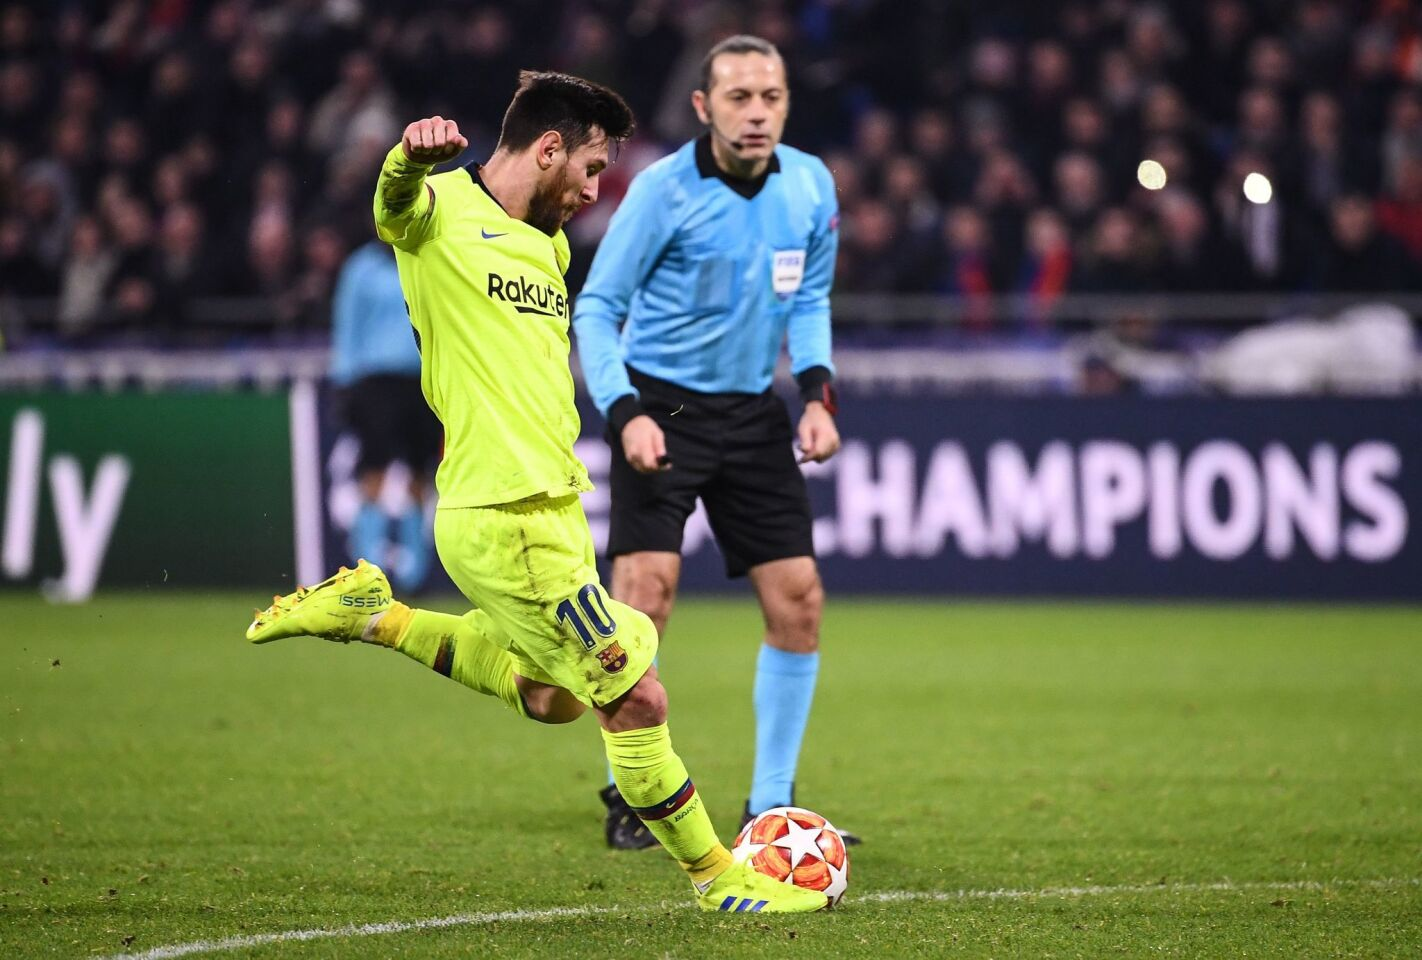 Barcelona's Argentinian forward Lionel Messi prepares to shoot the ball during the UEFA Champions League round of 16 first leg football match between Lyon (OL) and FC Barcelona on February 19, 2019, at the Groupama Stadium in Decines-Charpieu, central-eastern France. (Photo by FRANCK FIFE / AFP)FRANCK FIFE/AFP/Getty Images ** OUTS - ELSENT, FPG, CM - OUTS * NM, PH, VA if sourced by CT, LA or MoD **